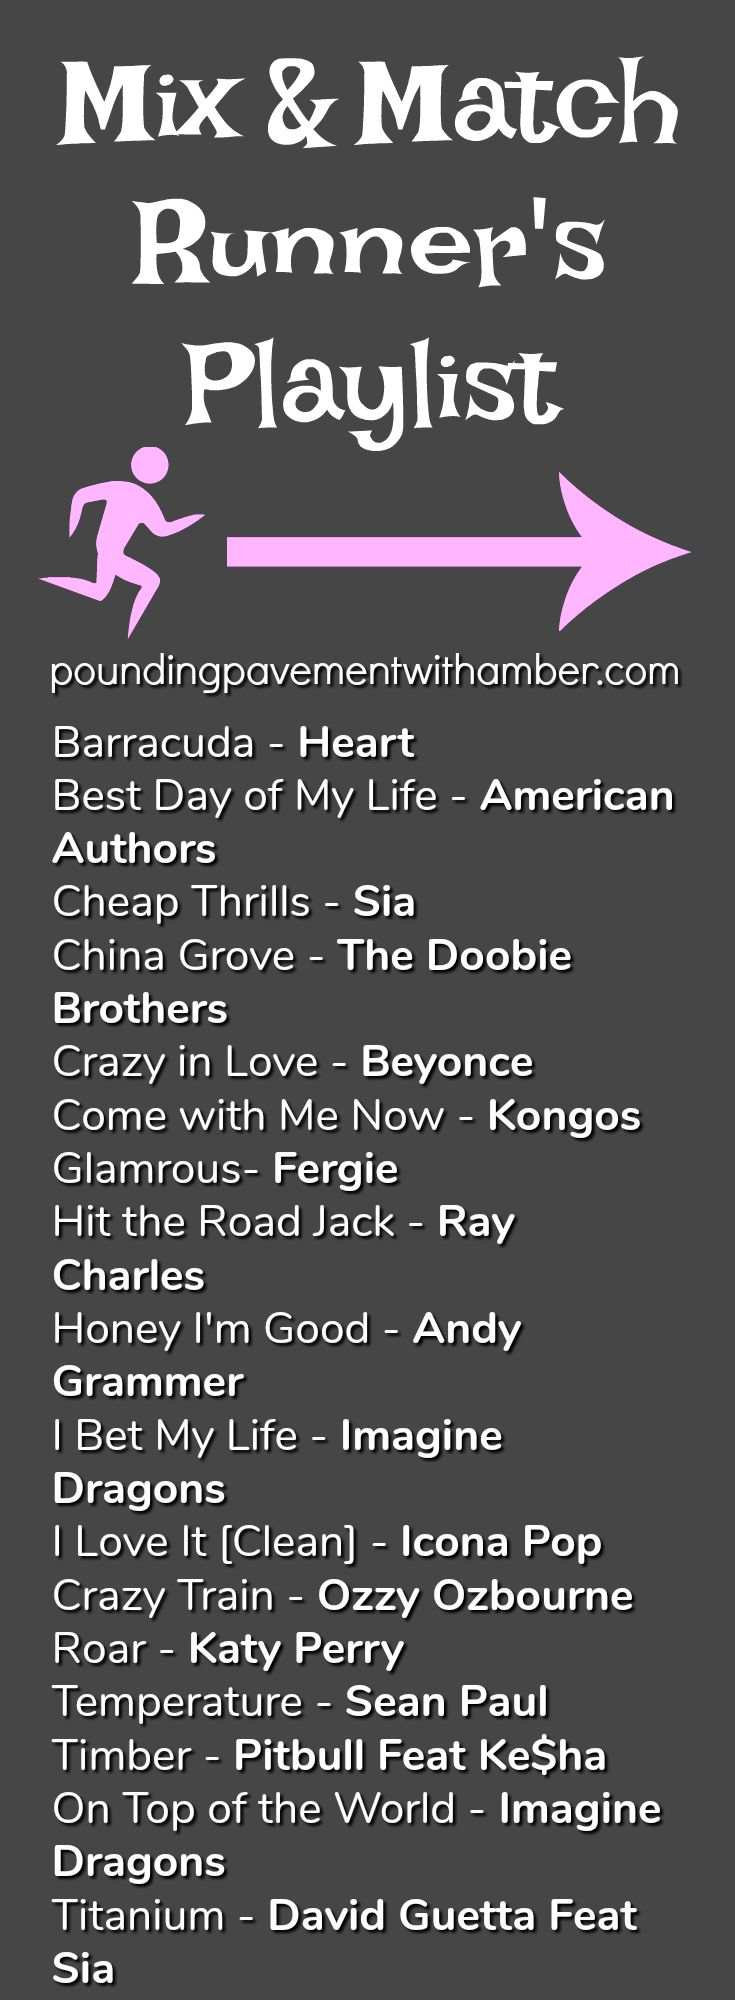 Training for Half or Full Marathons can be a grueling process. Great workout playlists are essential for success! Here is a great start mix and match playlist start. poundingpavementwithamber.com